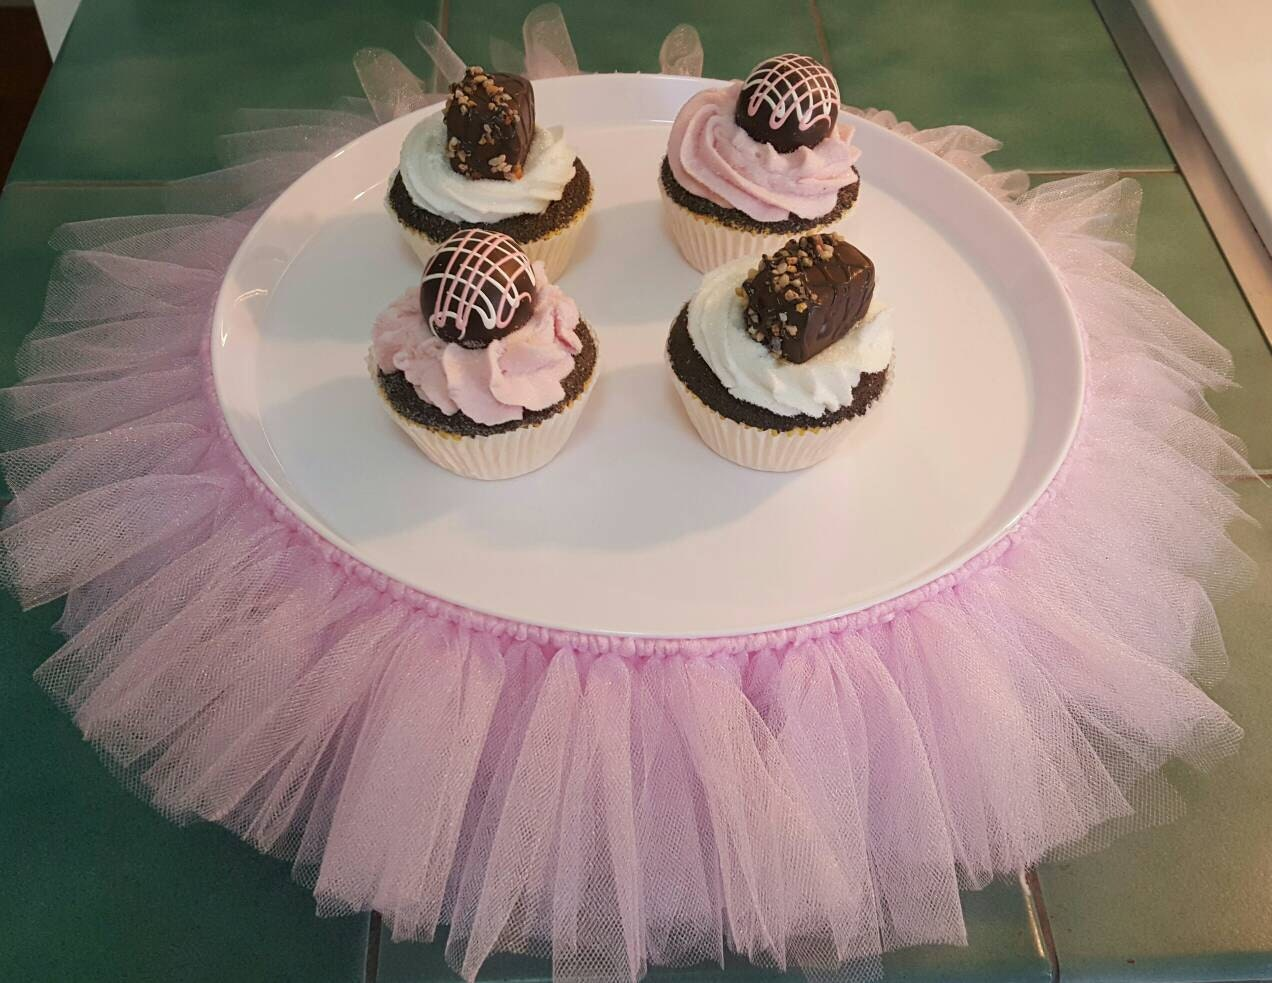 CAKE STAND Tutu Pink XL cupcake tier tulle skirt princess ballerina decorations Baby Shower 16 Birthday Party centerpiece bridal quinceanera & CAKE STAND Tutu Pink XL cupcake tier tulle skirt princess ballerina ...